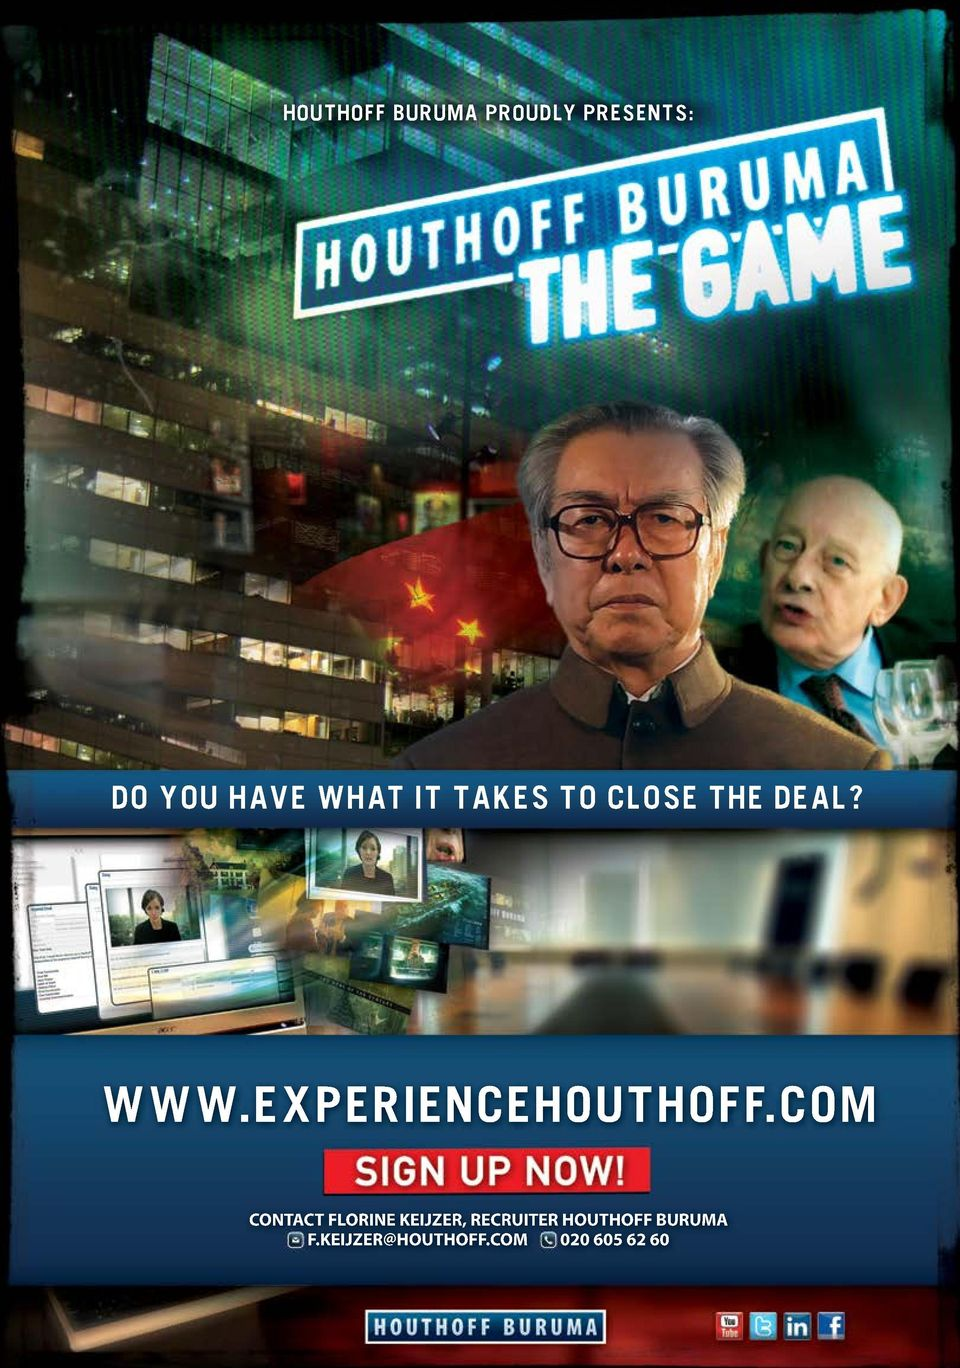 EXPERIENCEHOUTHOFF.